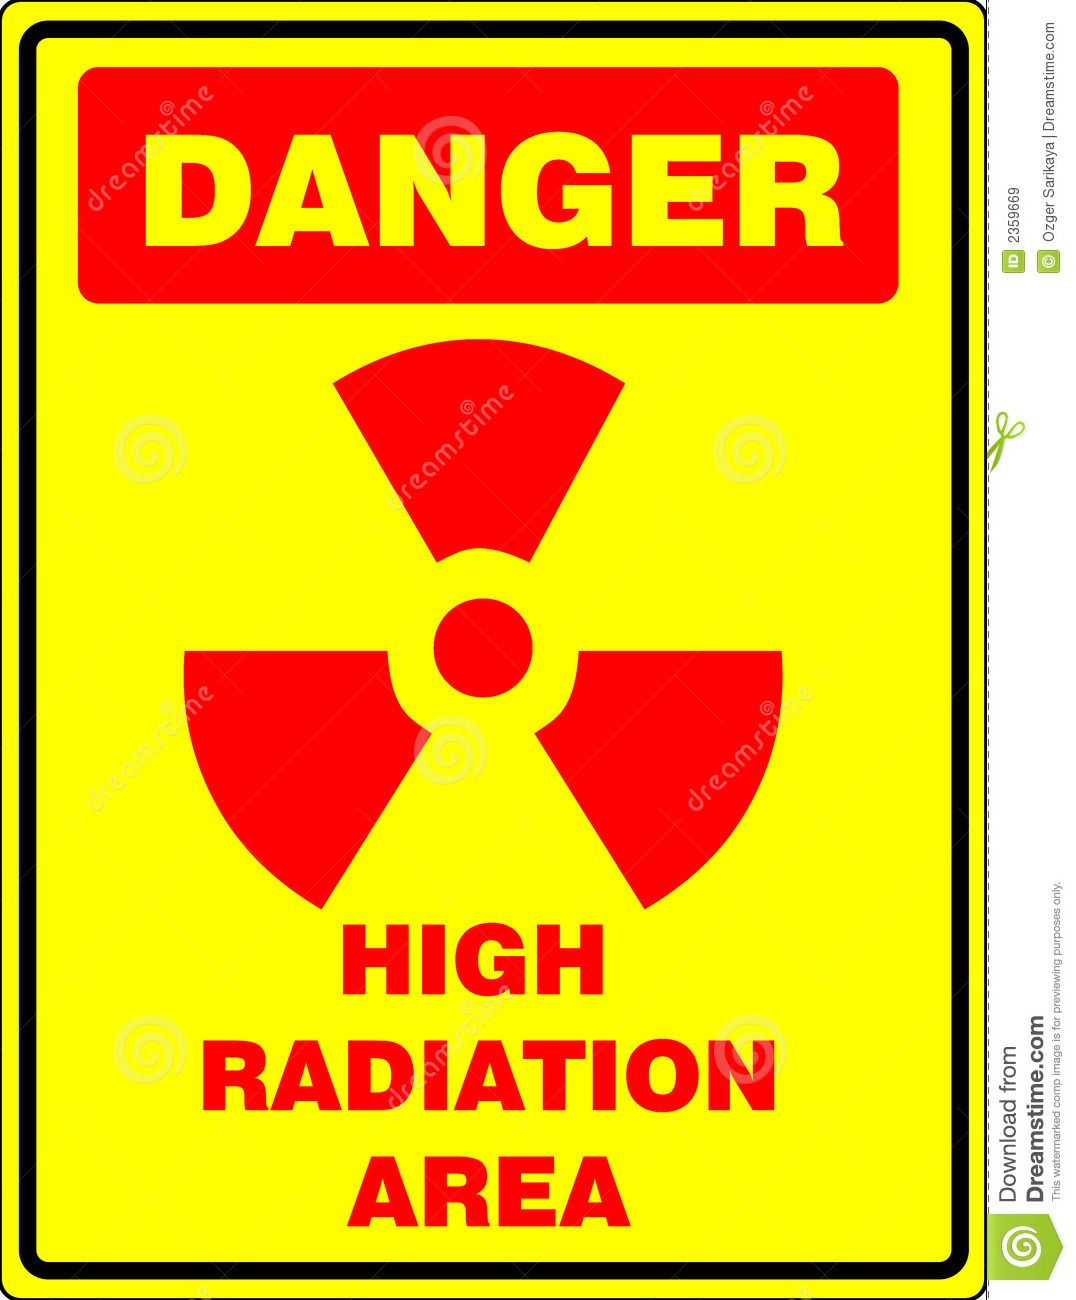 High Radiation Sign Royalty Free Stock Images  Image 2359669. Ias Coaching Banners. Tree Branch Decals. Density Signs. Subway Signs. Rangers Logo. Love Feeling Stickers. Confectionery Shop Banners. Puffy Stickers